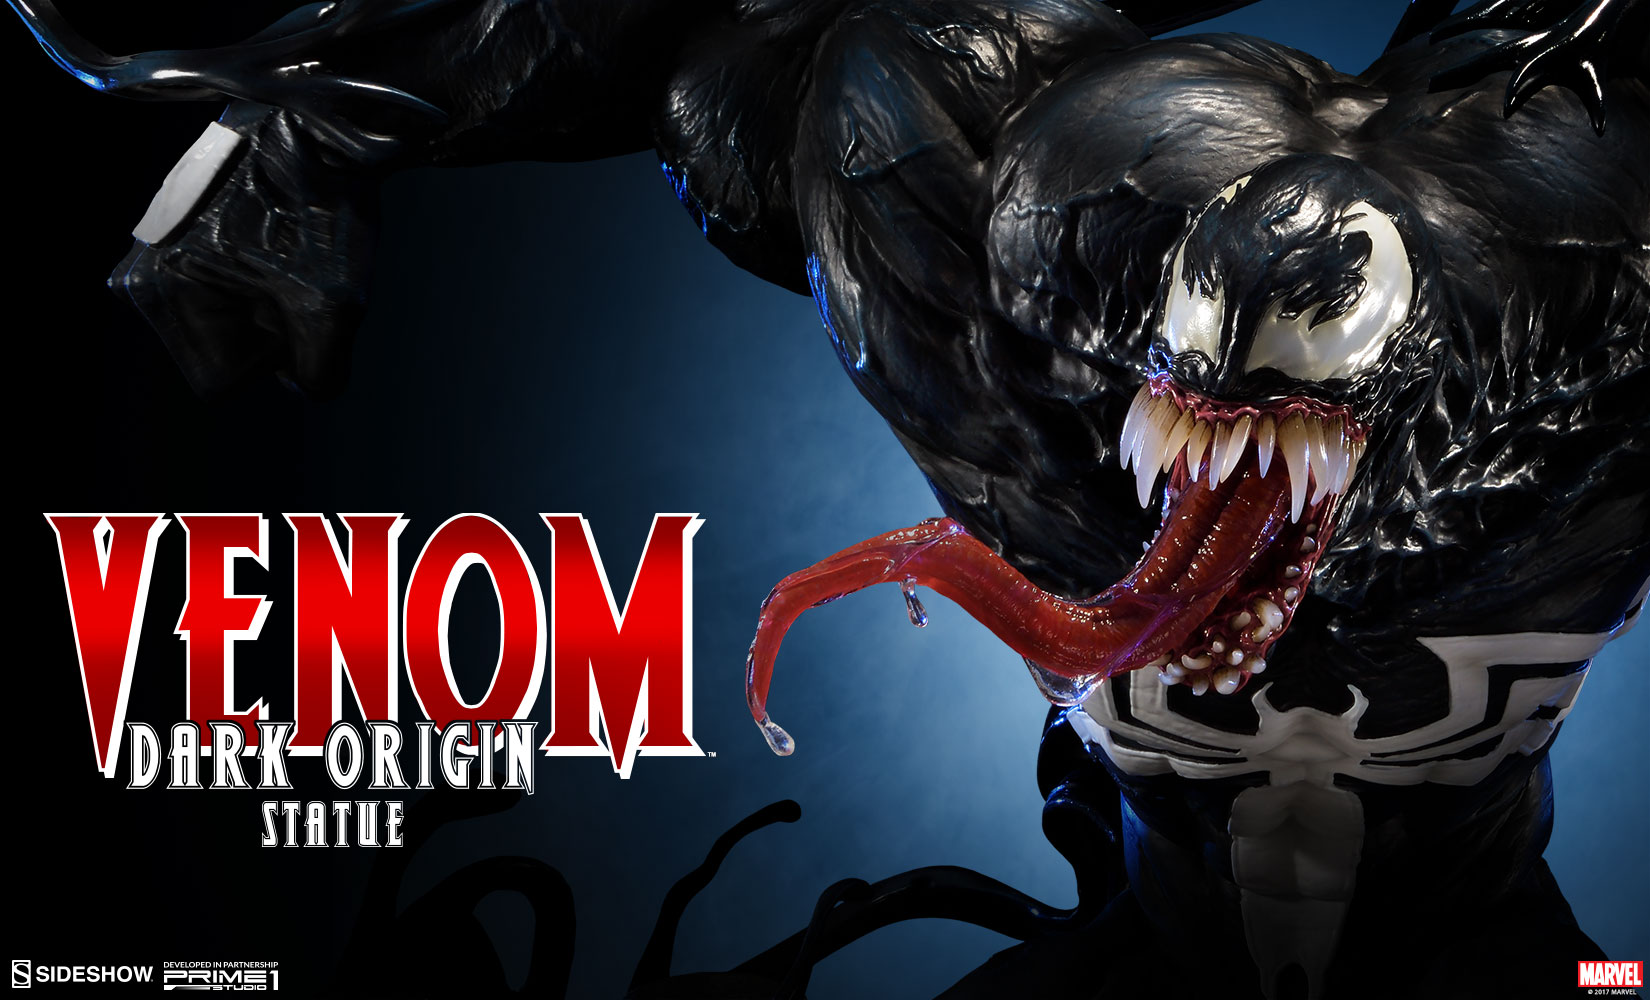 Venom - Statue by Sideshow Collectibles